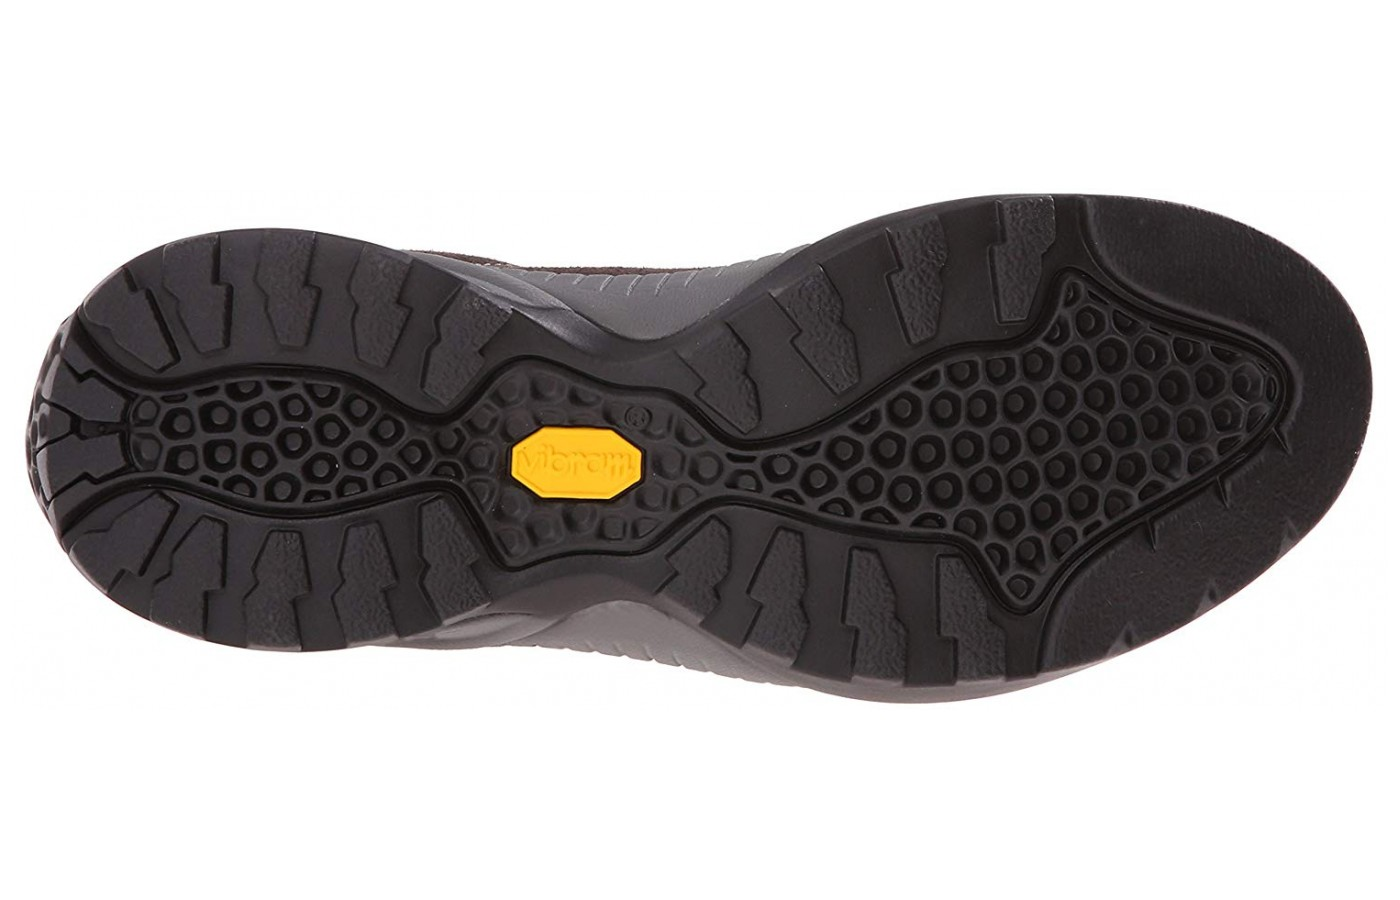 The Vibram Spyder sole is known for its durability and grip.